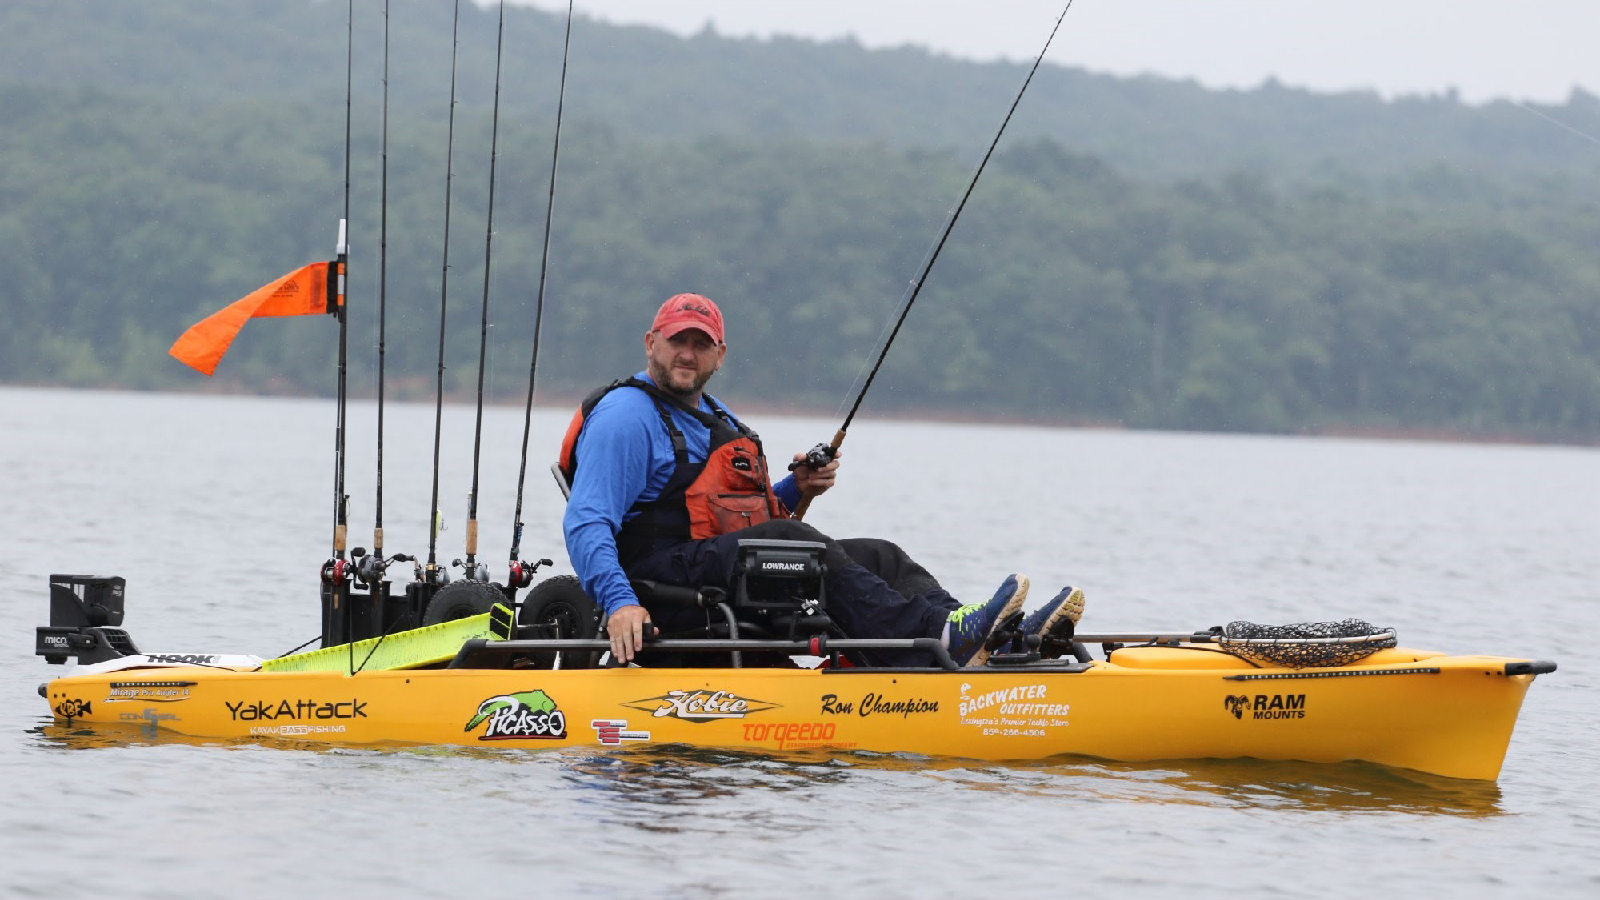 Ron Champion - Kayak Fishing Pro